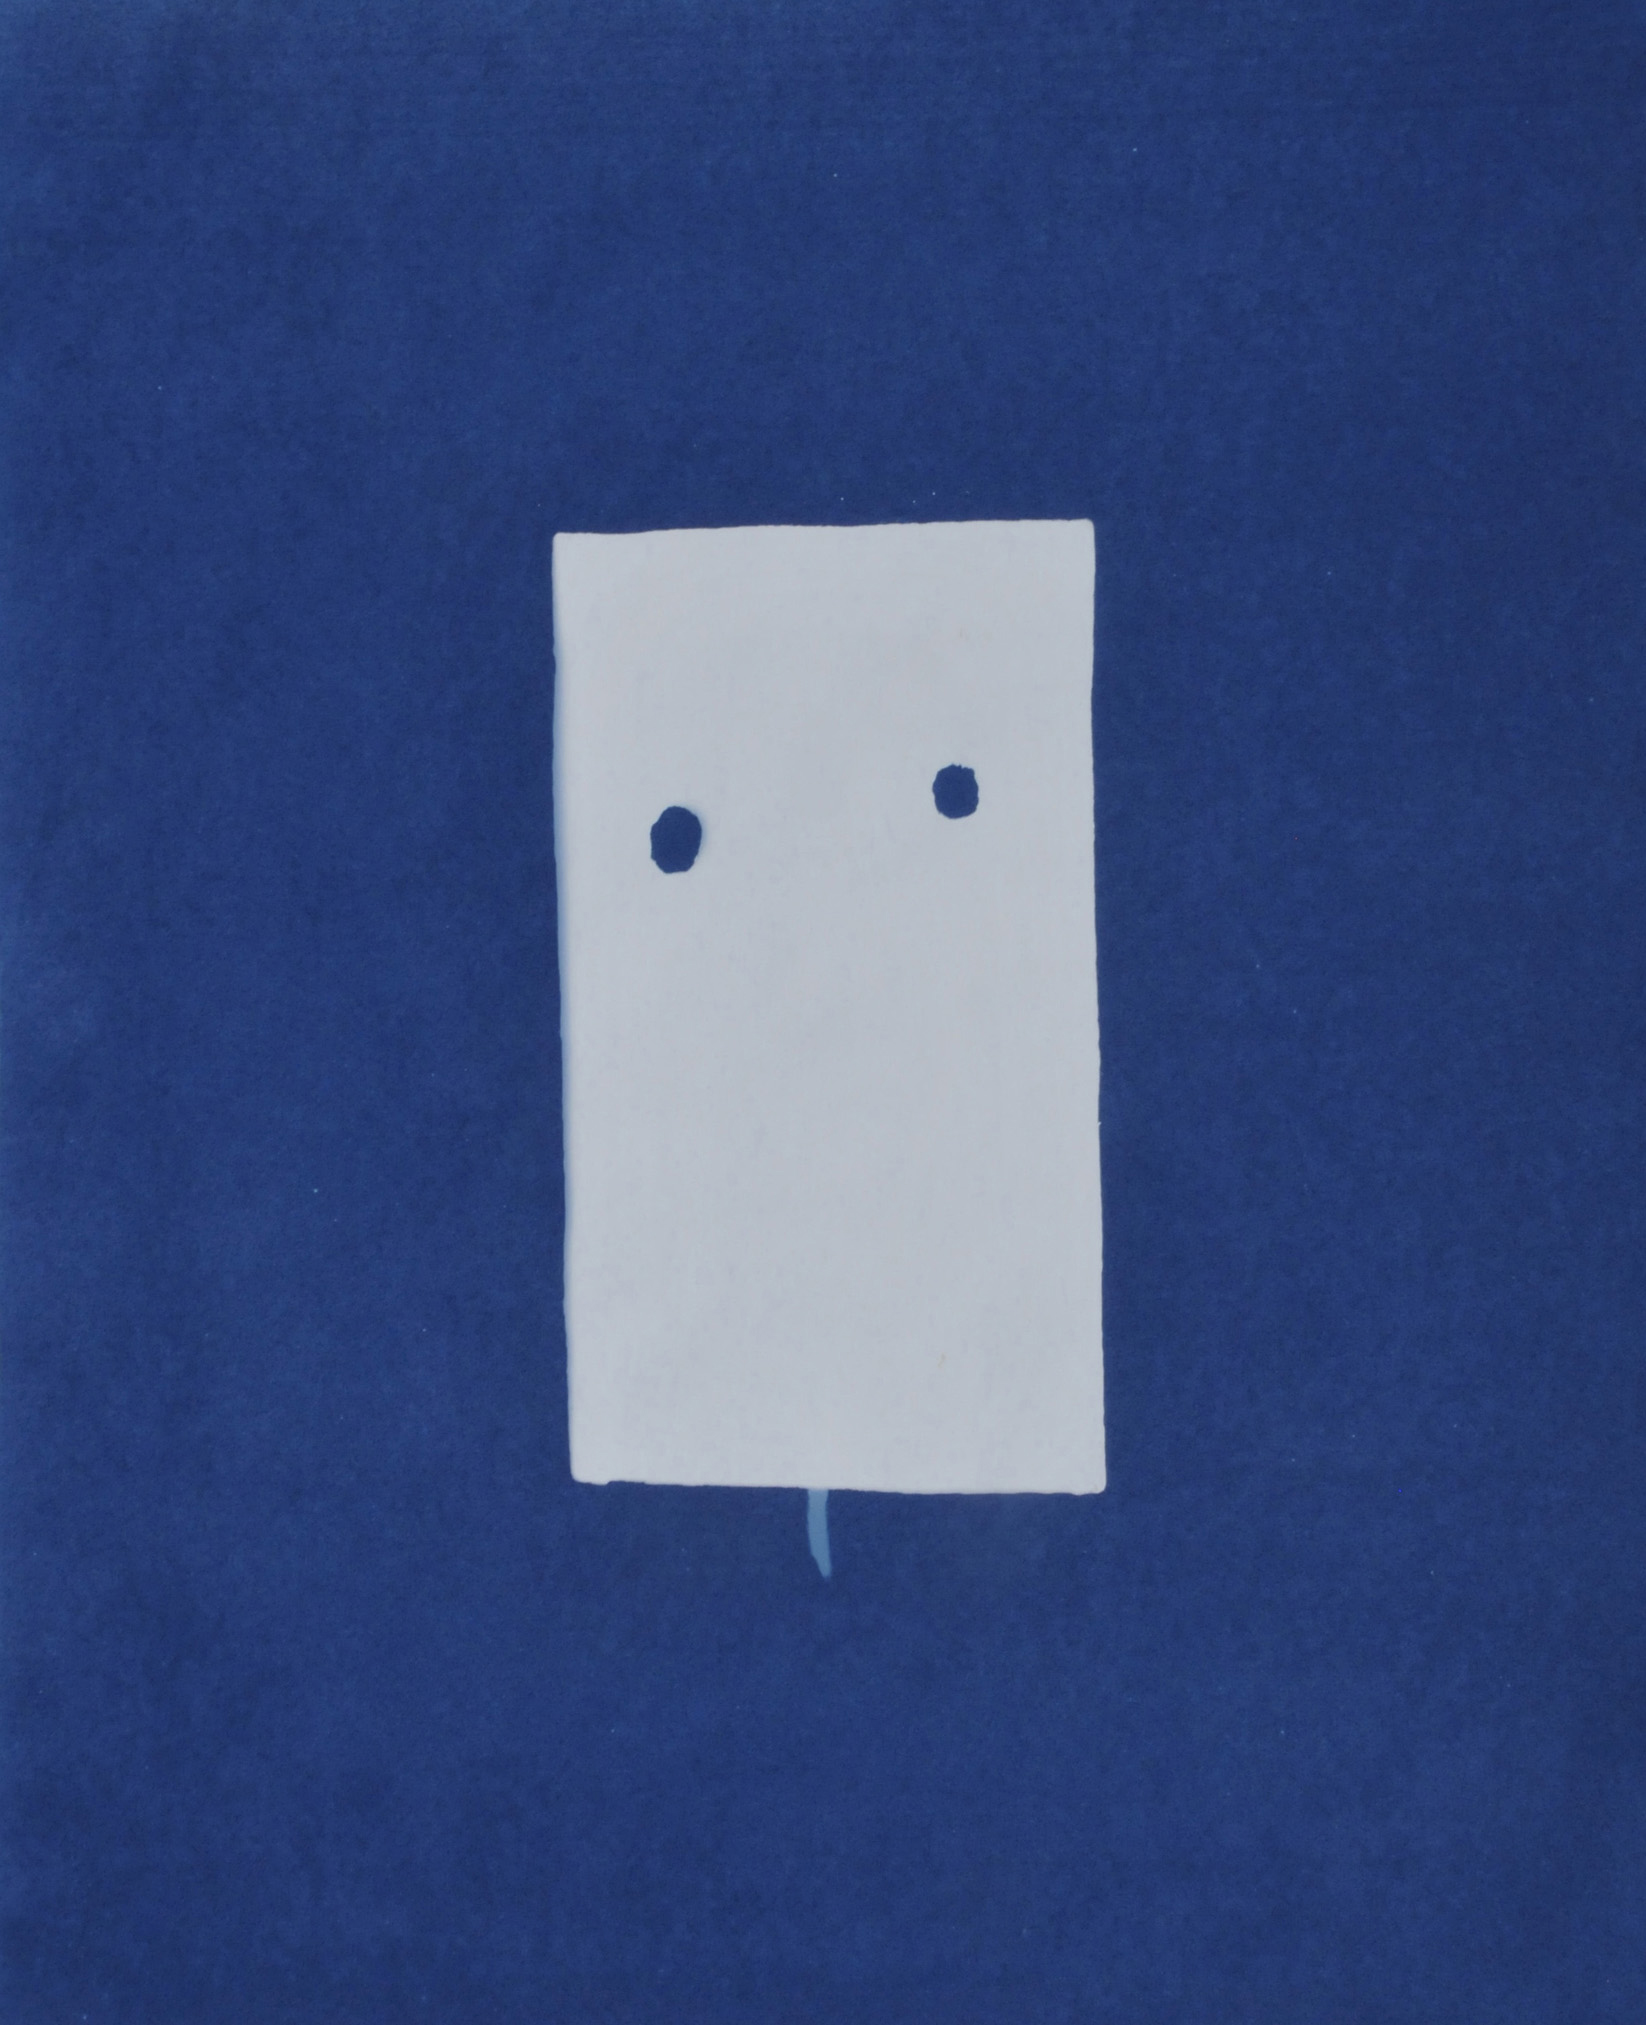 Atomic Mask, cyanotype (sunprint) of a fragment of a steel beam from the A-Bomb Peace Dome, from the Hiroshima Peace Memorial Museum archives, Hiroshima, Japan, 2008